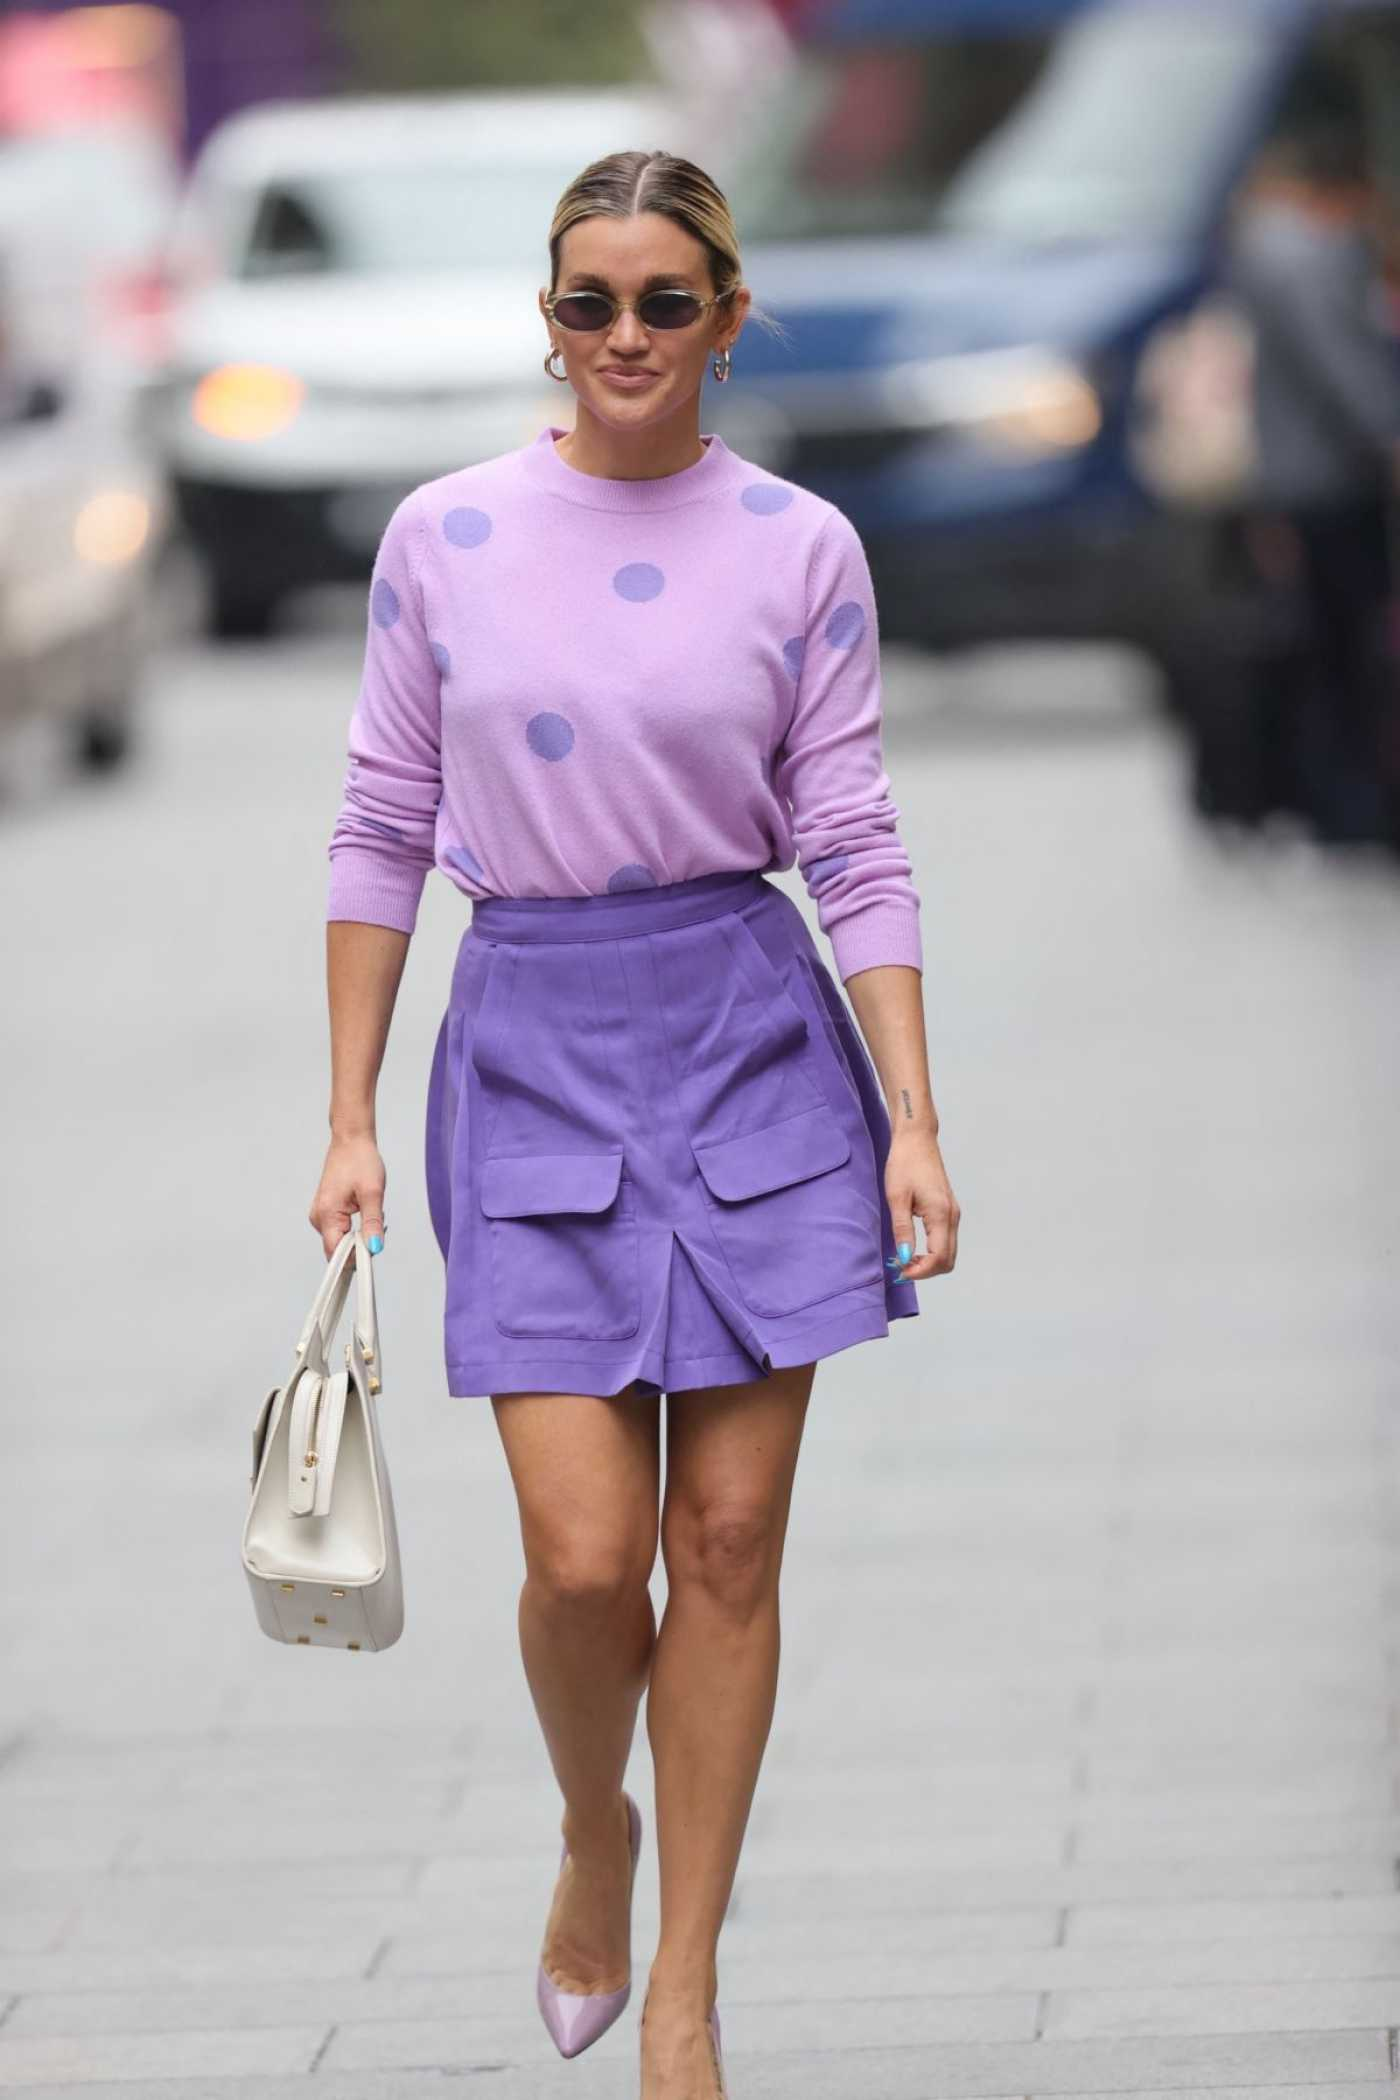 Ashley Roberts in a Purple Outfit Leaves the Heart Radio in London 07/13/2021